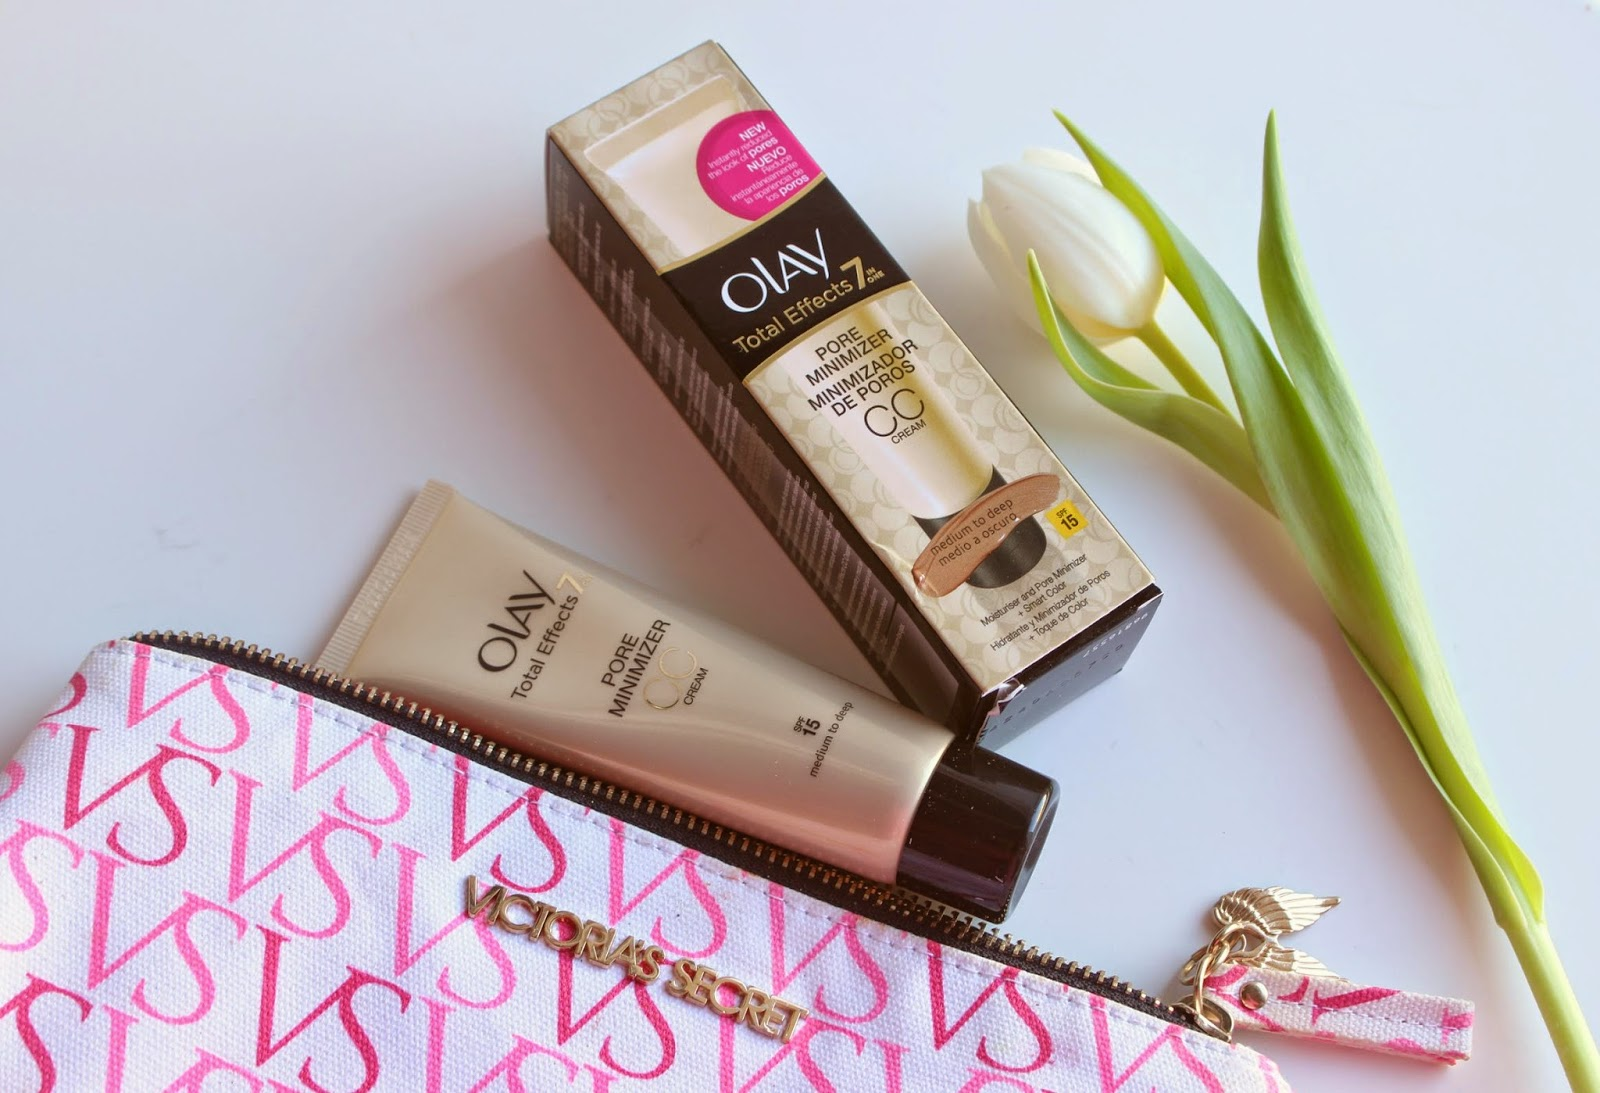 6ceafedb19f Olay Total Effects Pore Minimizer CC Cream Review | The Sunday Girl |  Bloglovin'